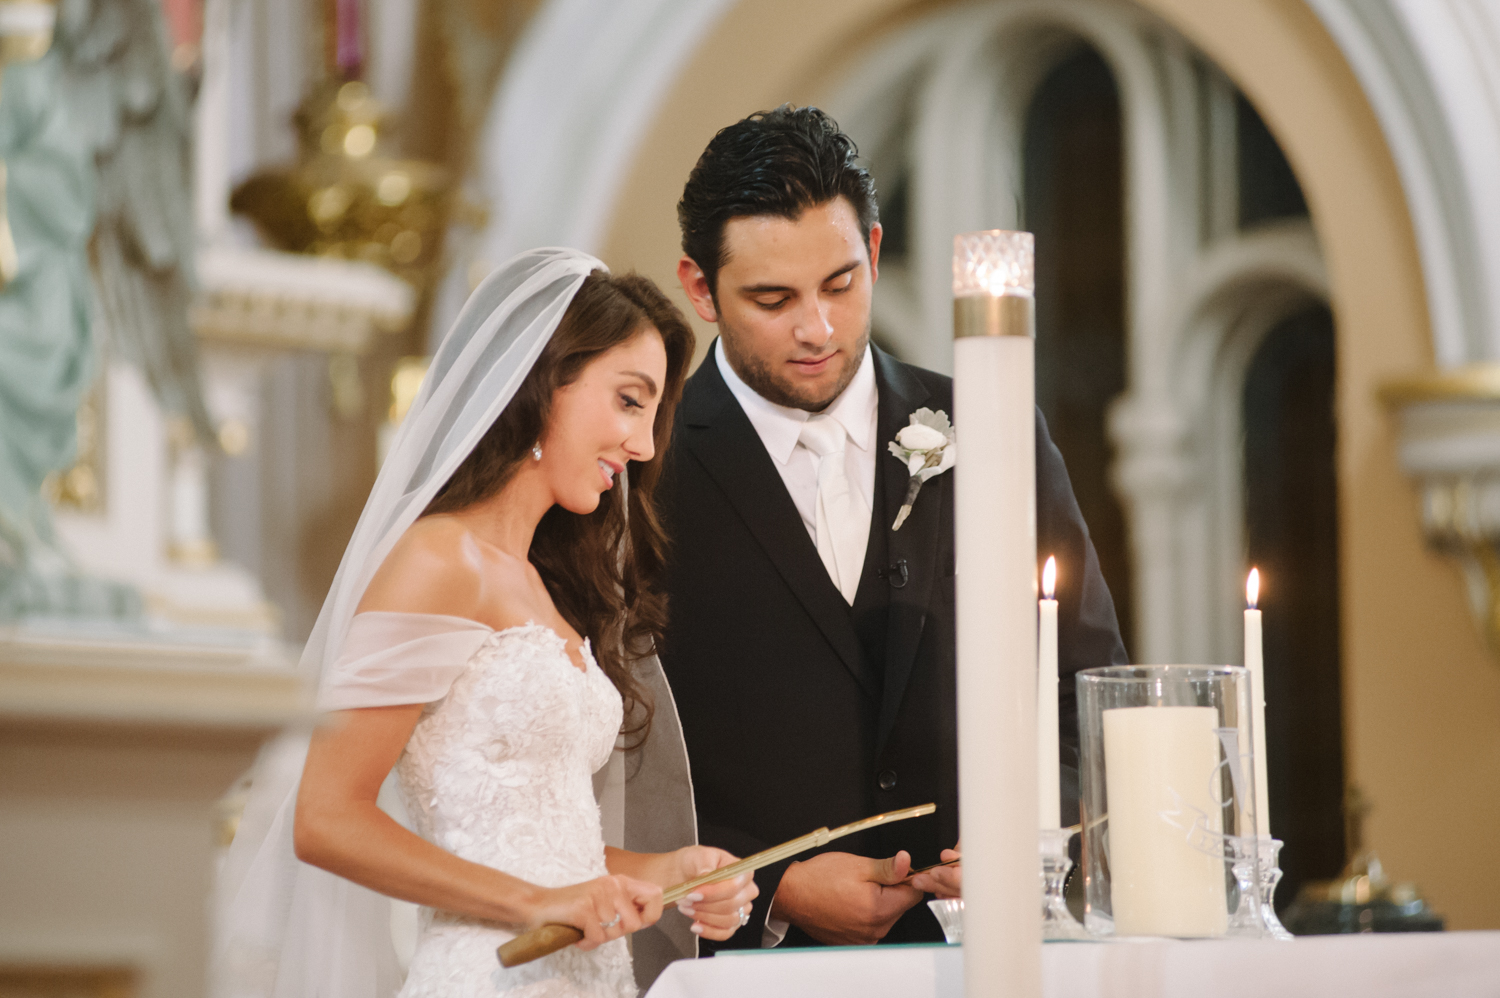 Bride and groom lighting candle at St. Michael in Old Town Chicago, Midwest wedding photographer